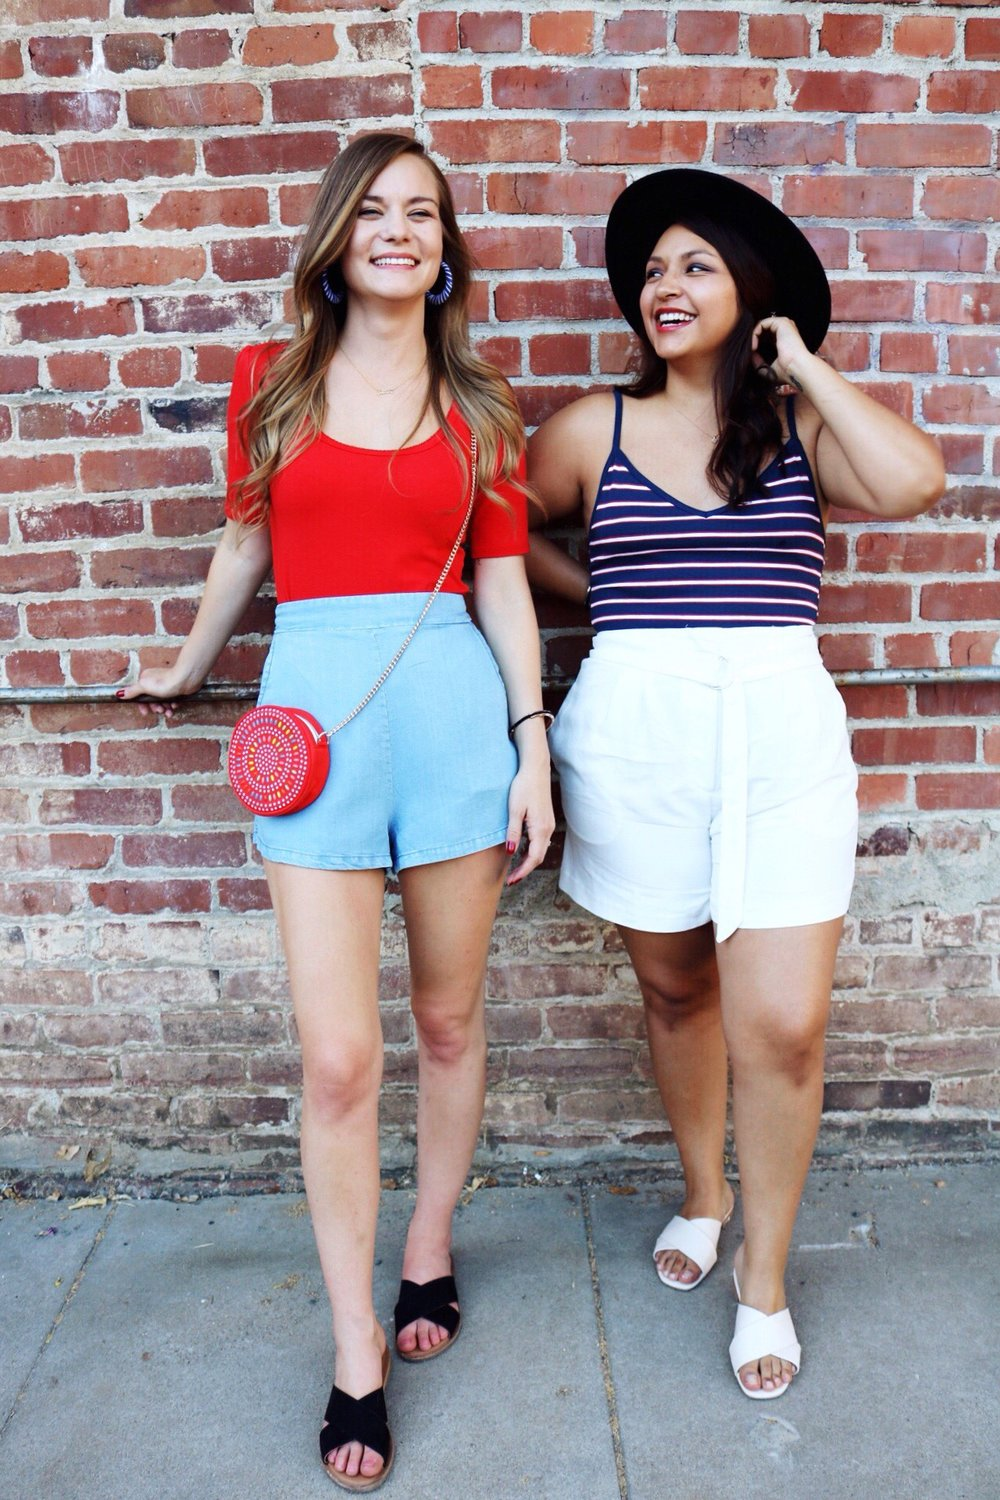 You can't go wrong with solid colors and stripes to create the perfect 4th of July outfit!